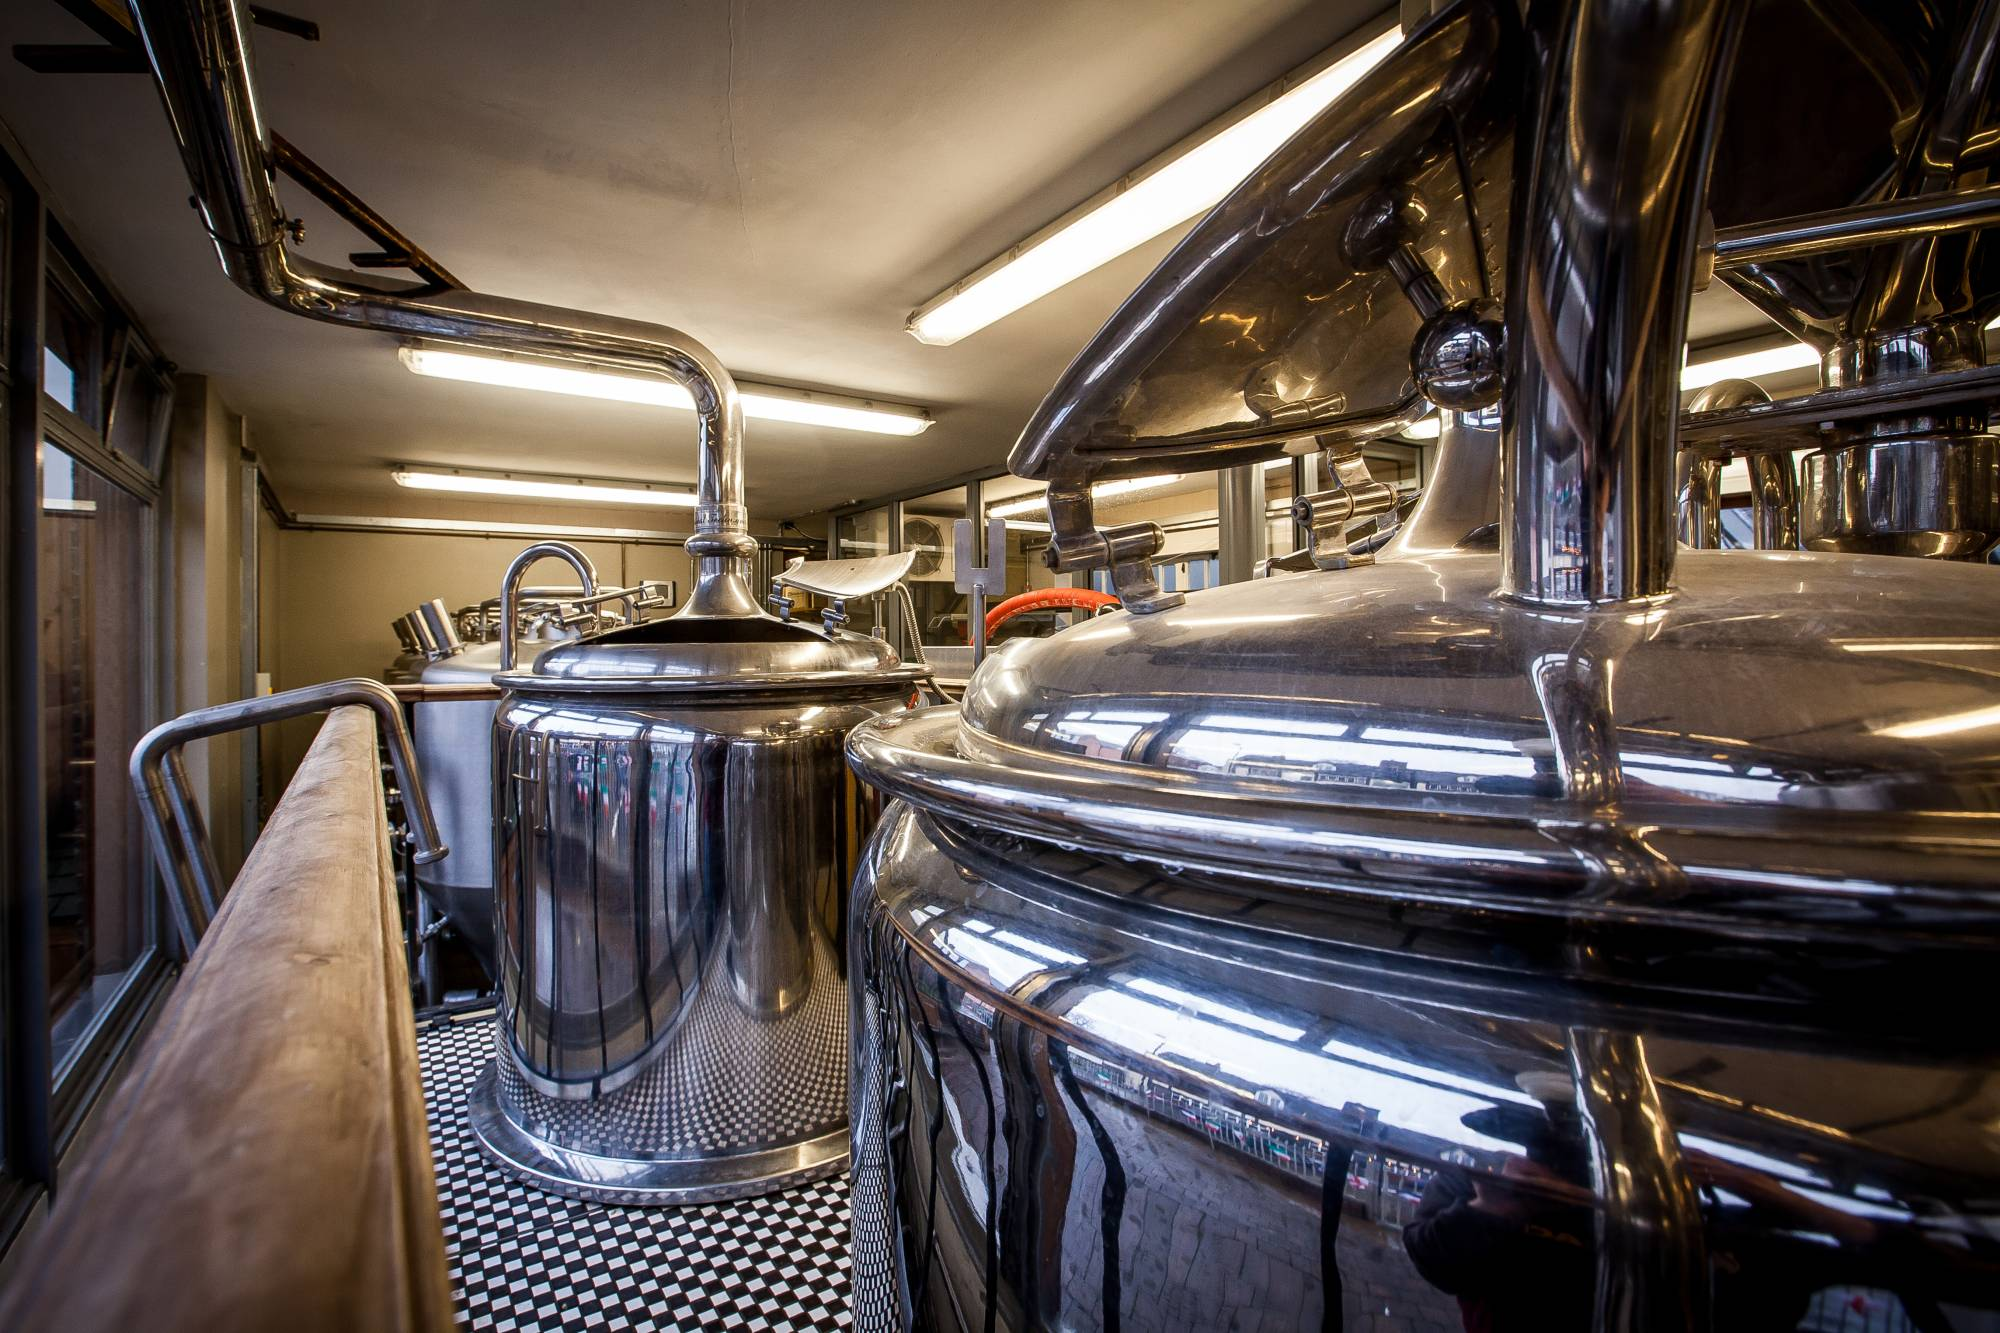 Design Bank Wit.Brewery Tour 22nd Dec 2019 Briarbank Bar And Brewery